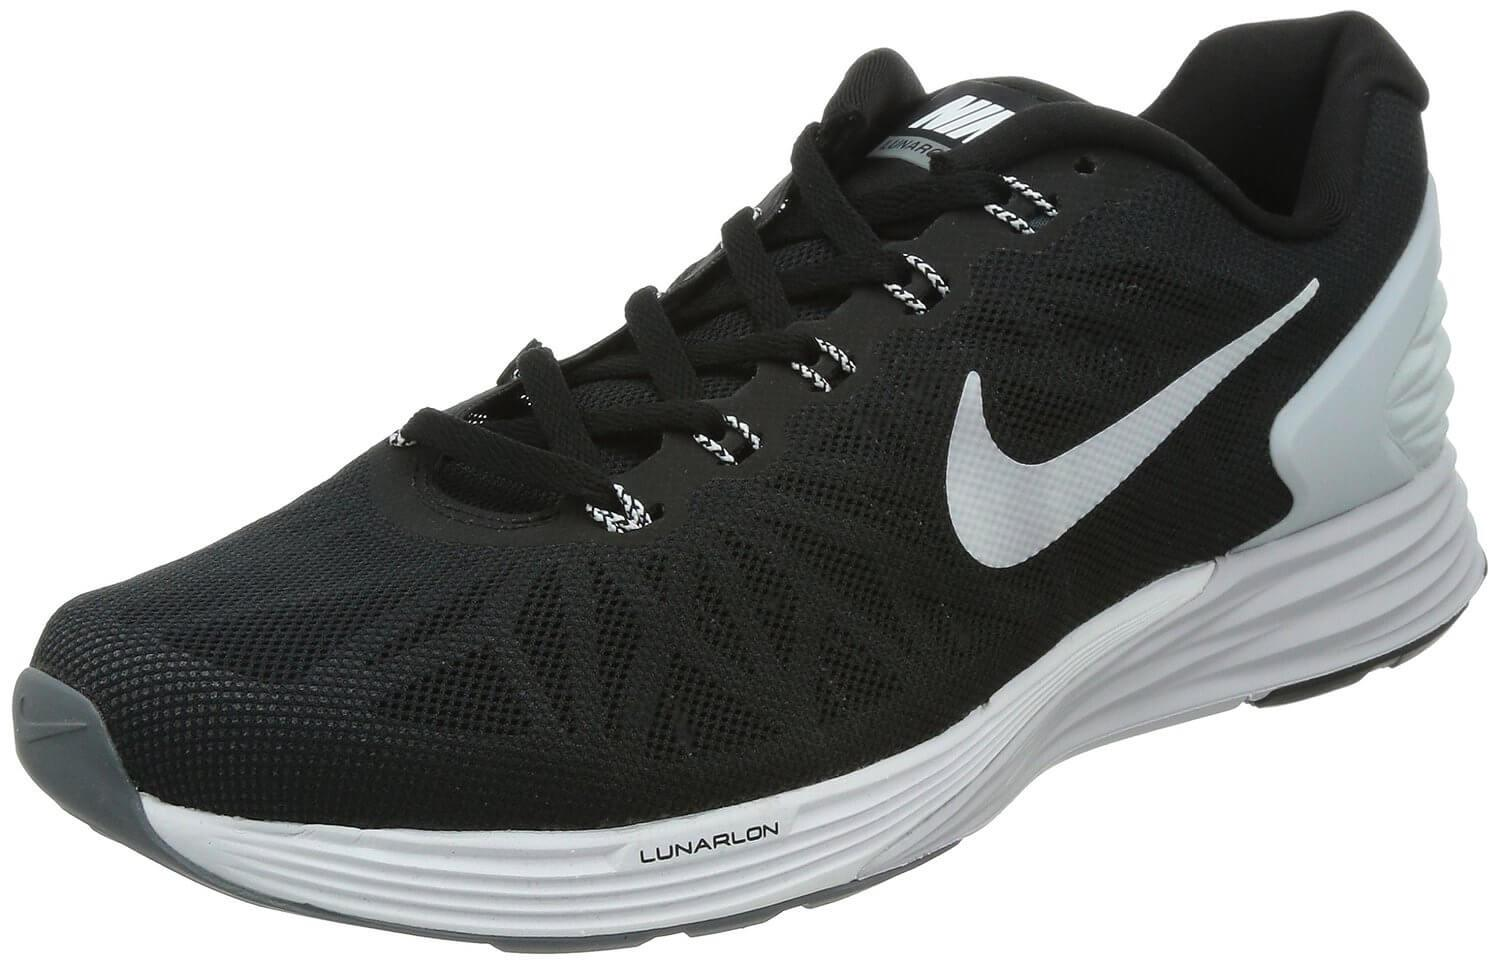 c8ff336b2a655 Nike LunarGlide 6 Reviewed - To Buy or Not in May 2019